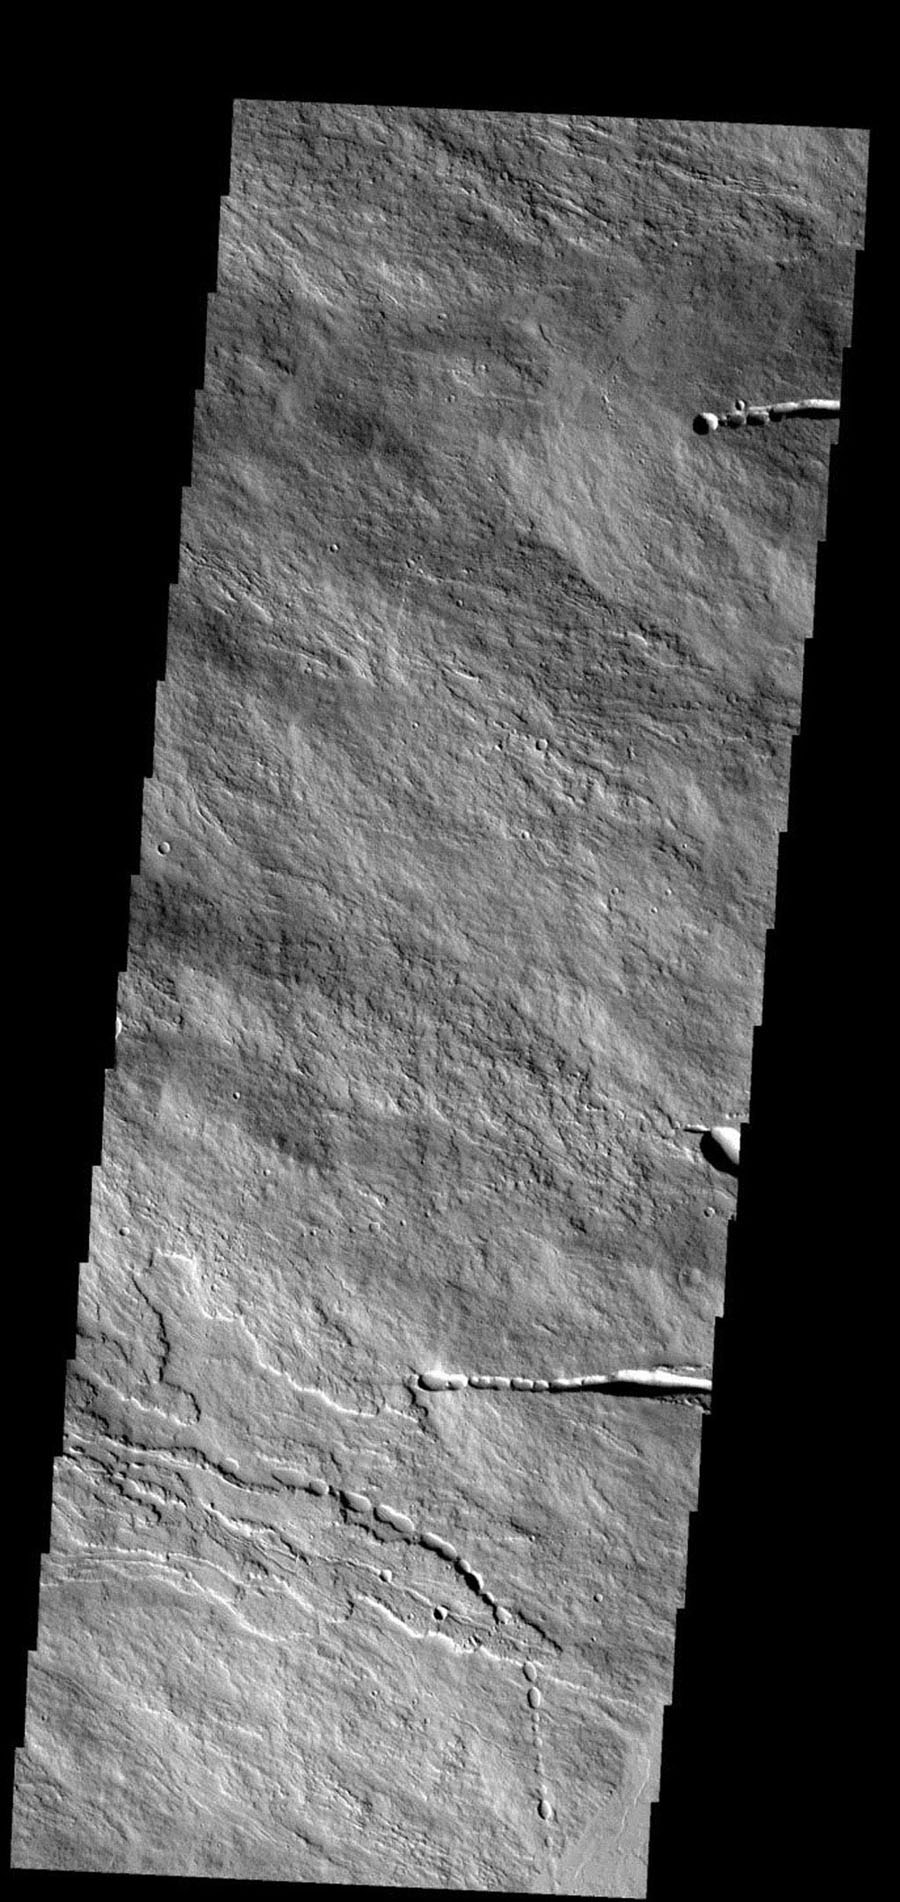 This image shows a small portion of the flank of Ascraeus Mons on Mars, taken by NASA's Mars 2001 Odyssey spacecraft.